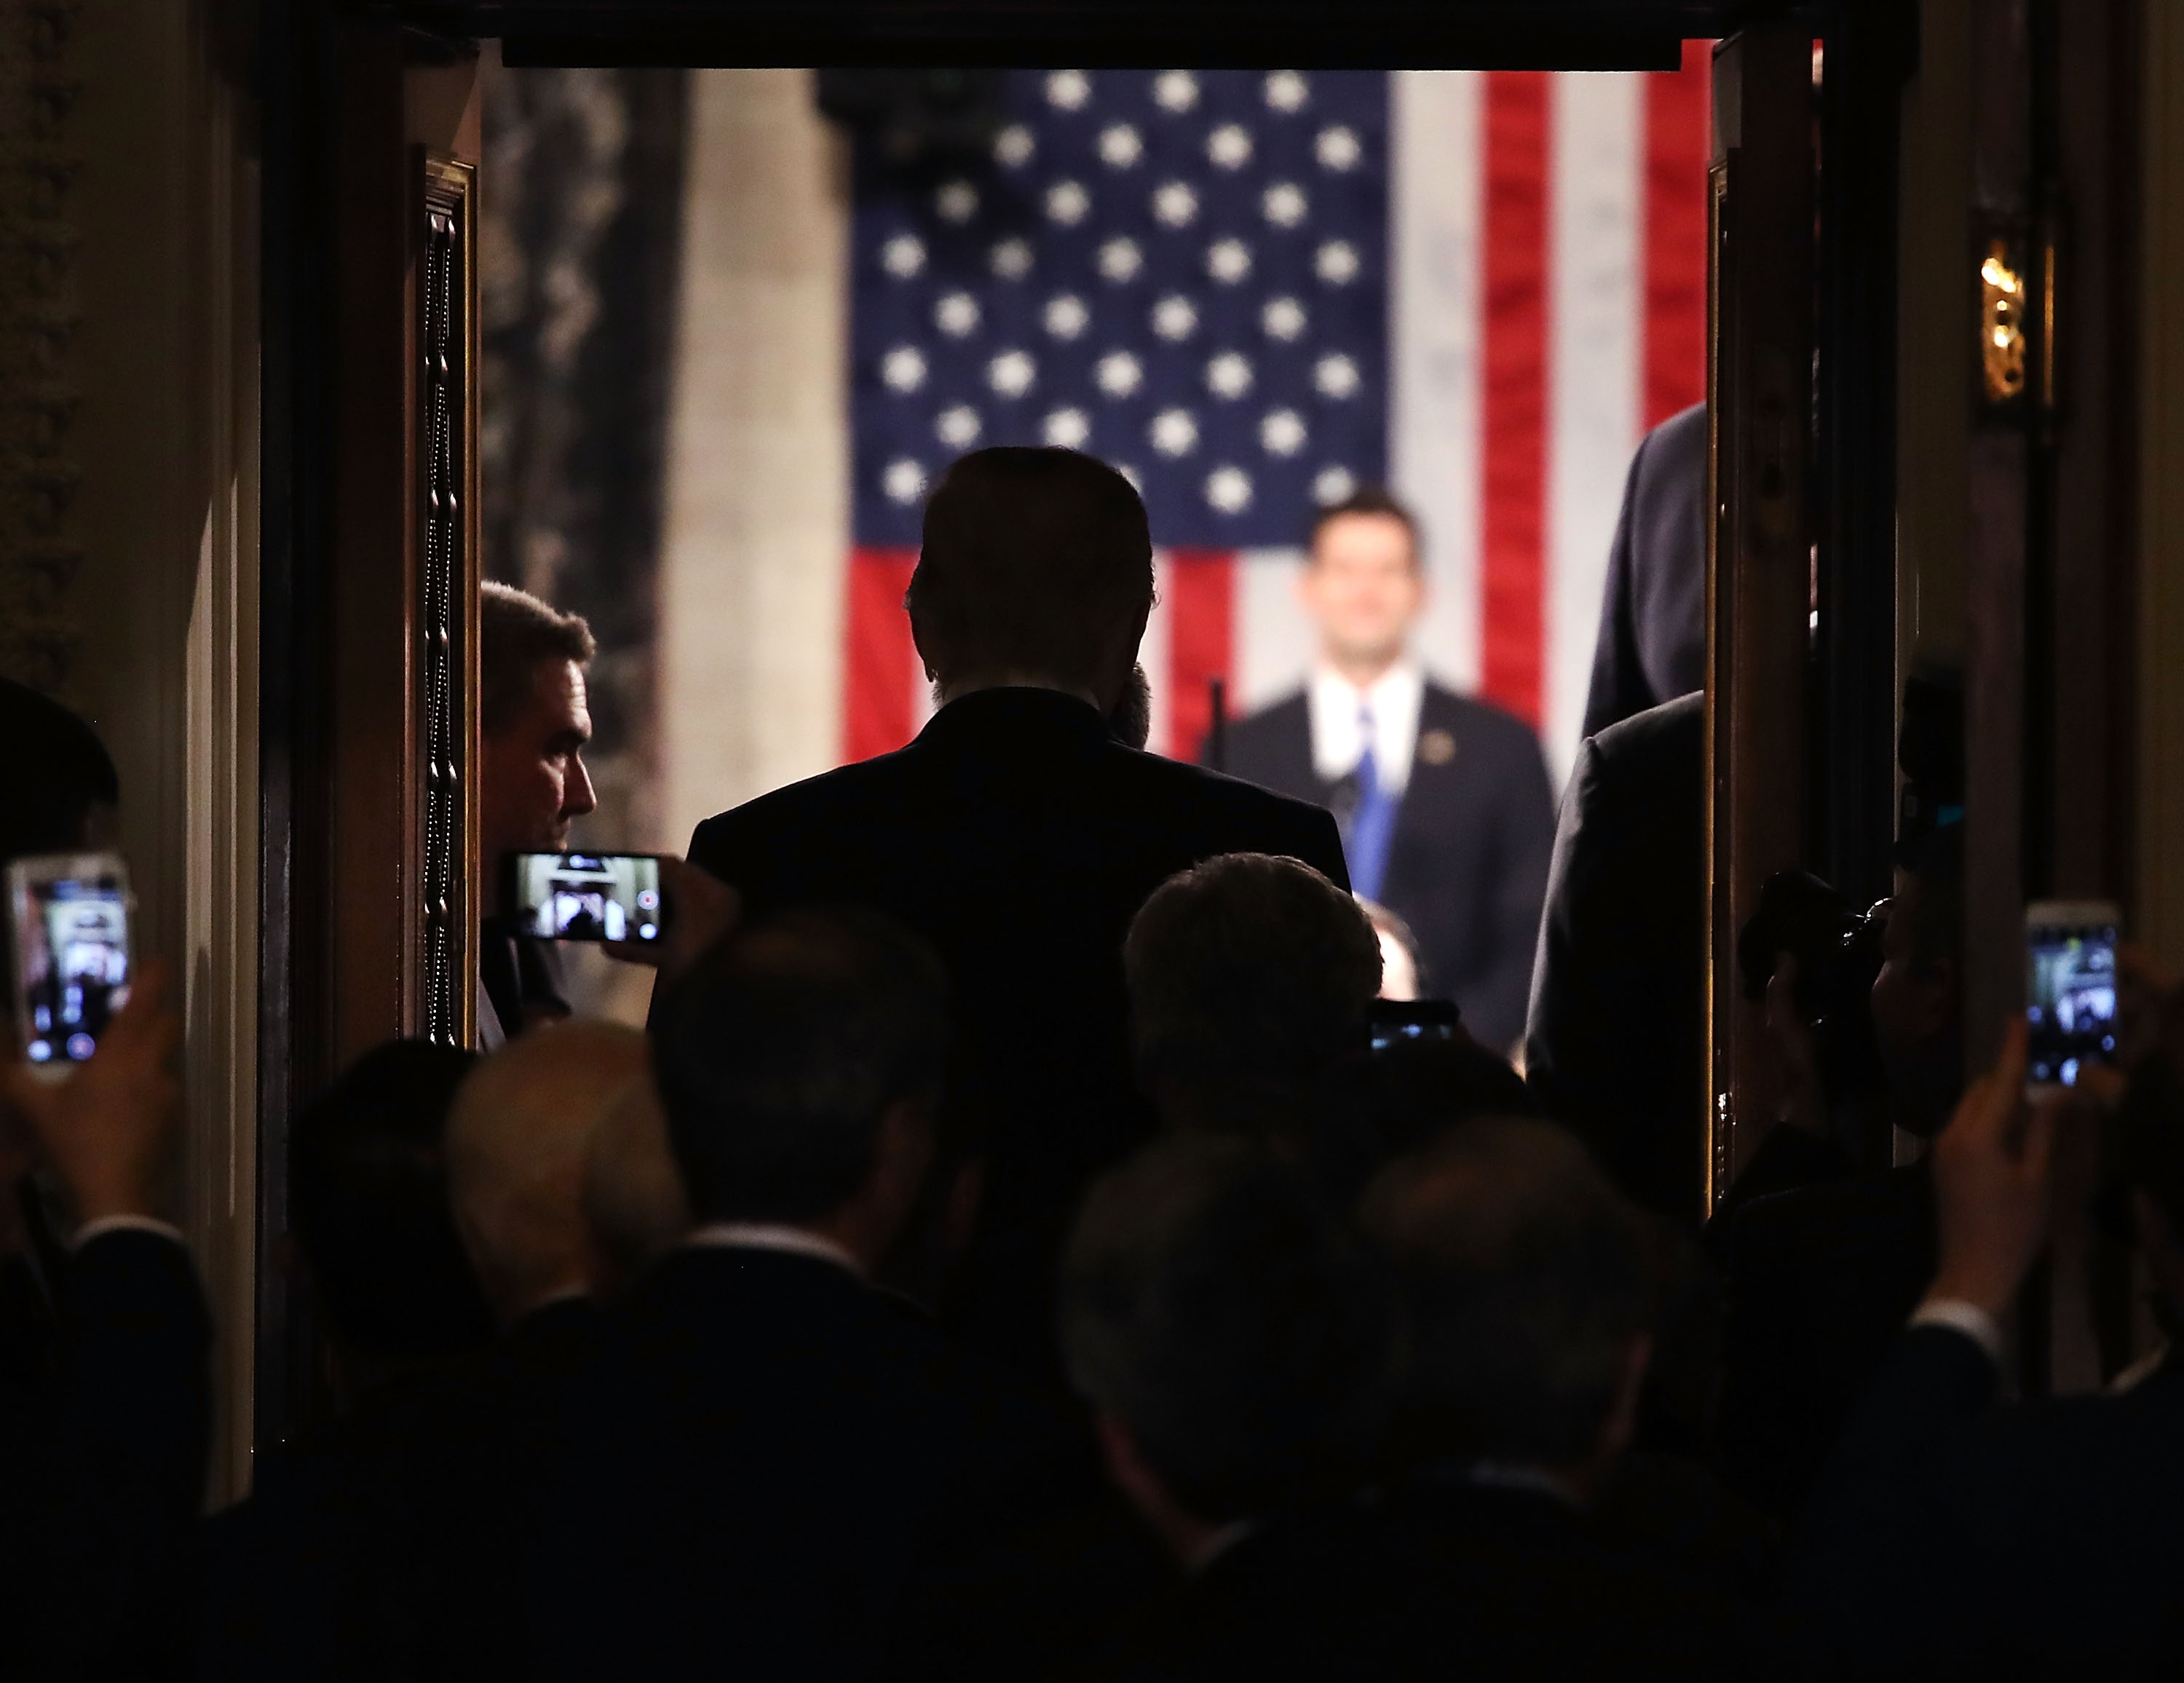 U.S. President Donald Trump stands in the doorway of the House chamber while being introduced to speak before a joint session of Congress on Feb. 28, 2017 in Washington, DC.